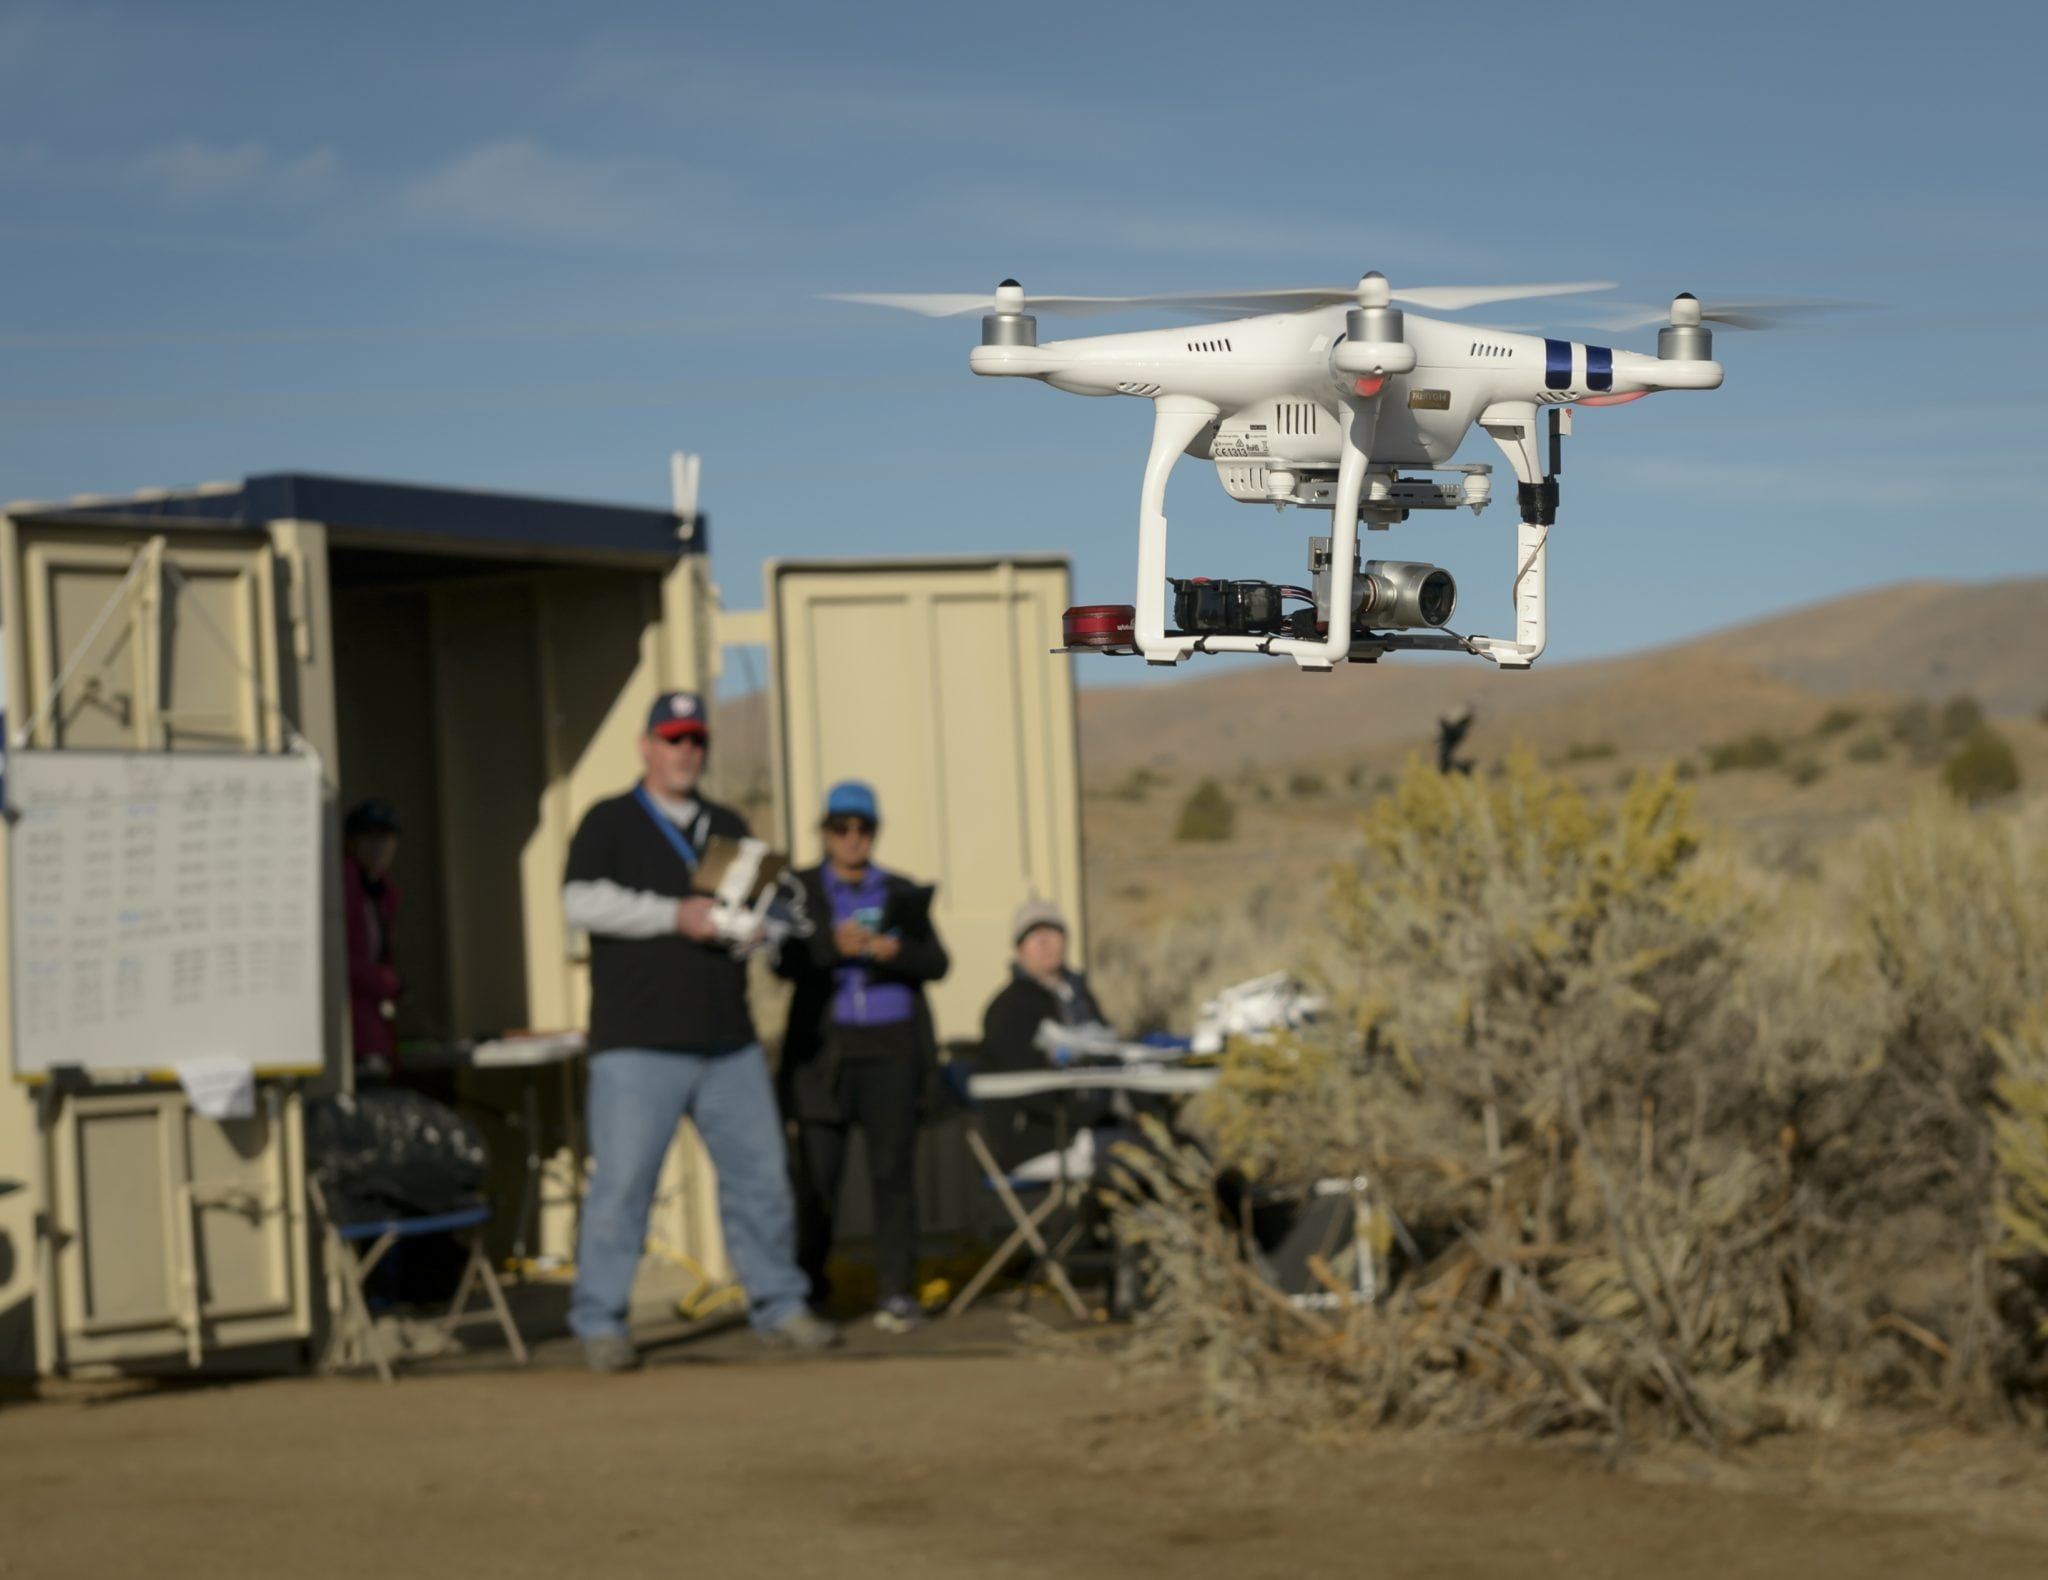 Drone Co-habitation Services operates a Phantom 3 commercial multi-rotor unmanned aircraft, one of 11 vehicles in the UTM TCL2 demonstration that will fly beyond line of sight of the pilot in command in Nevada test